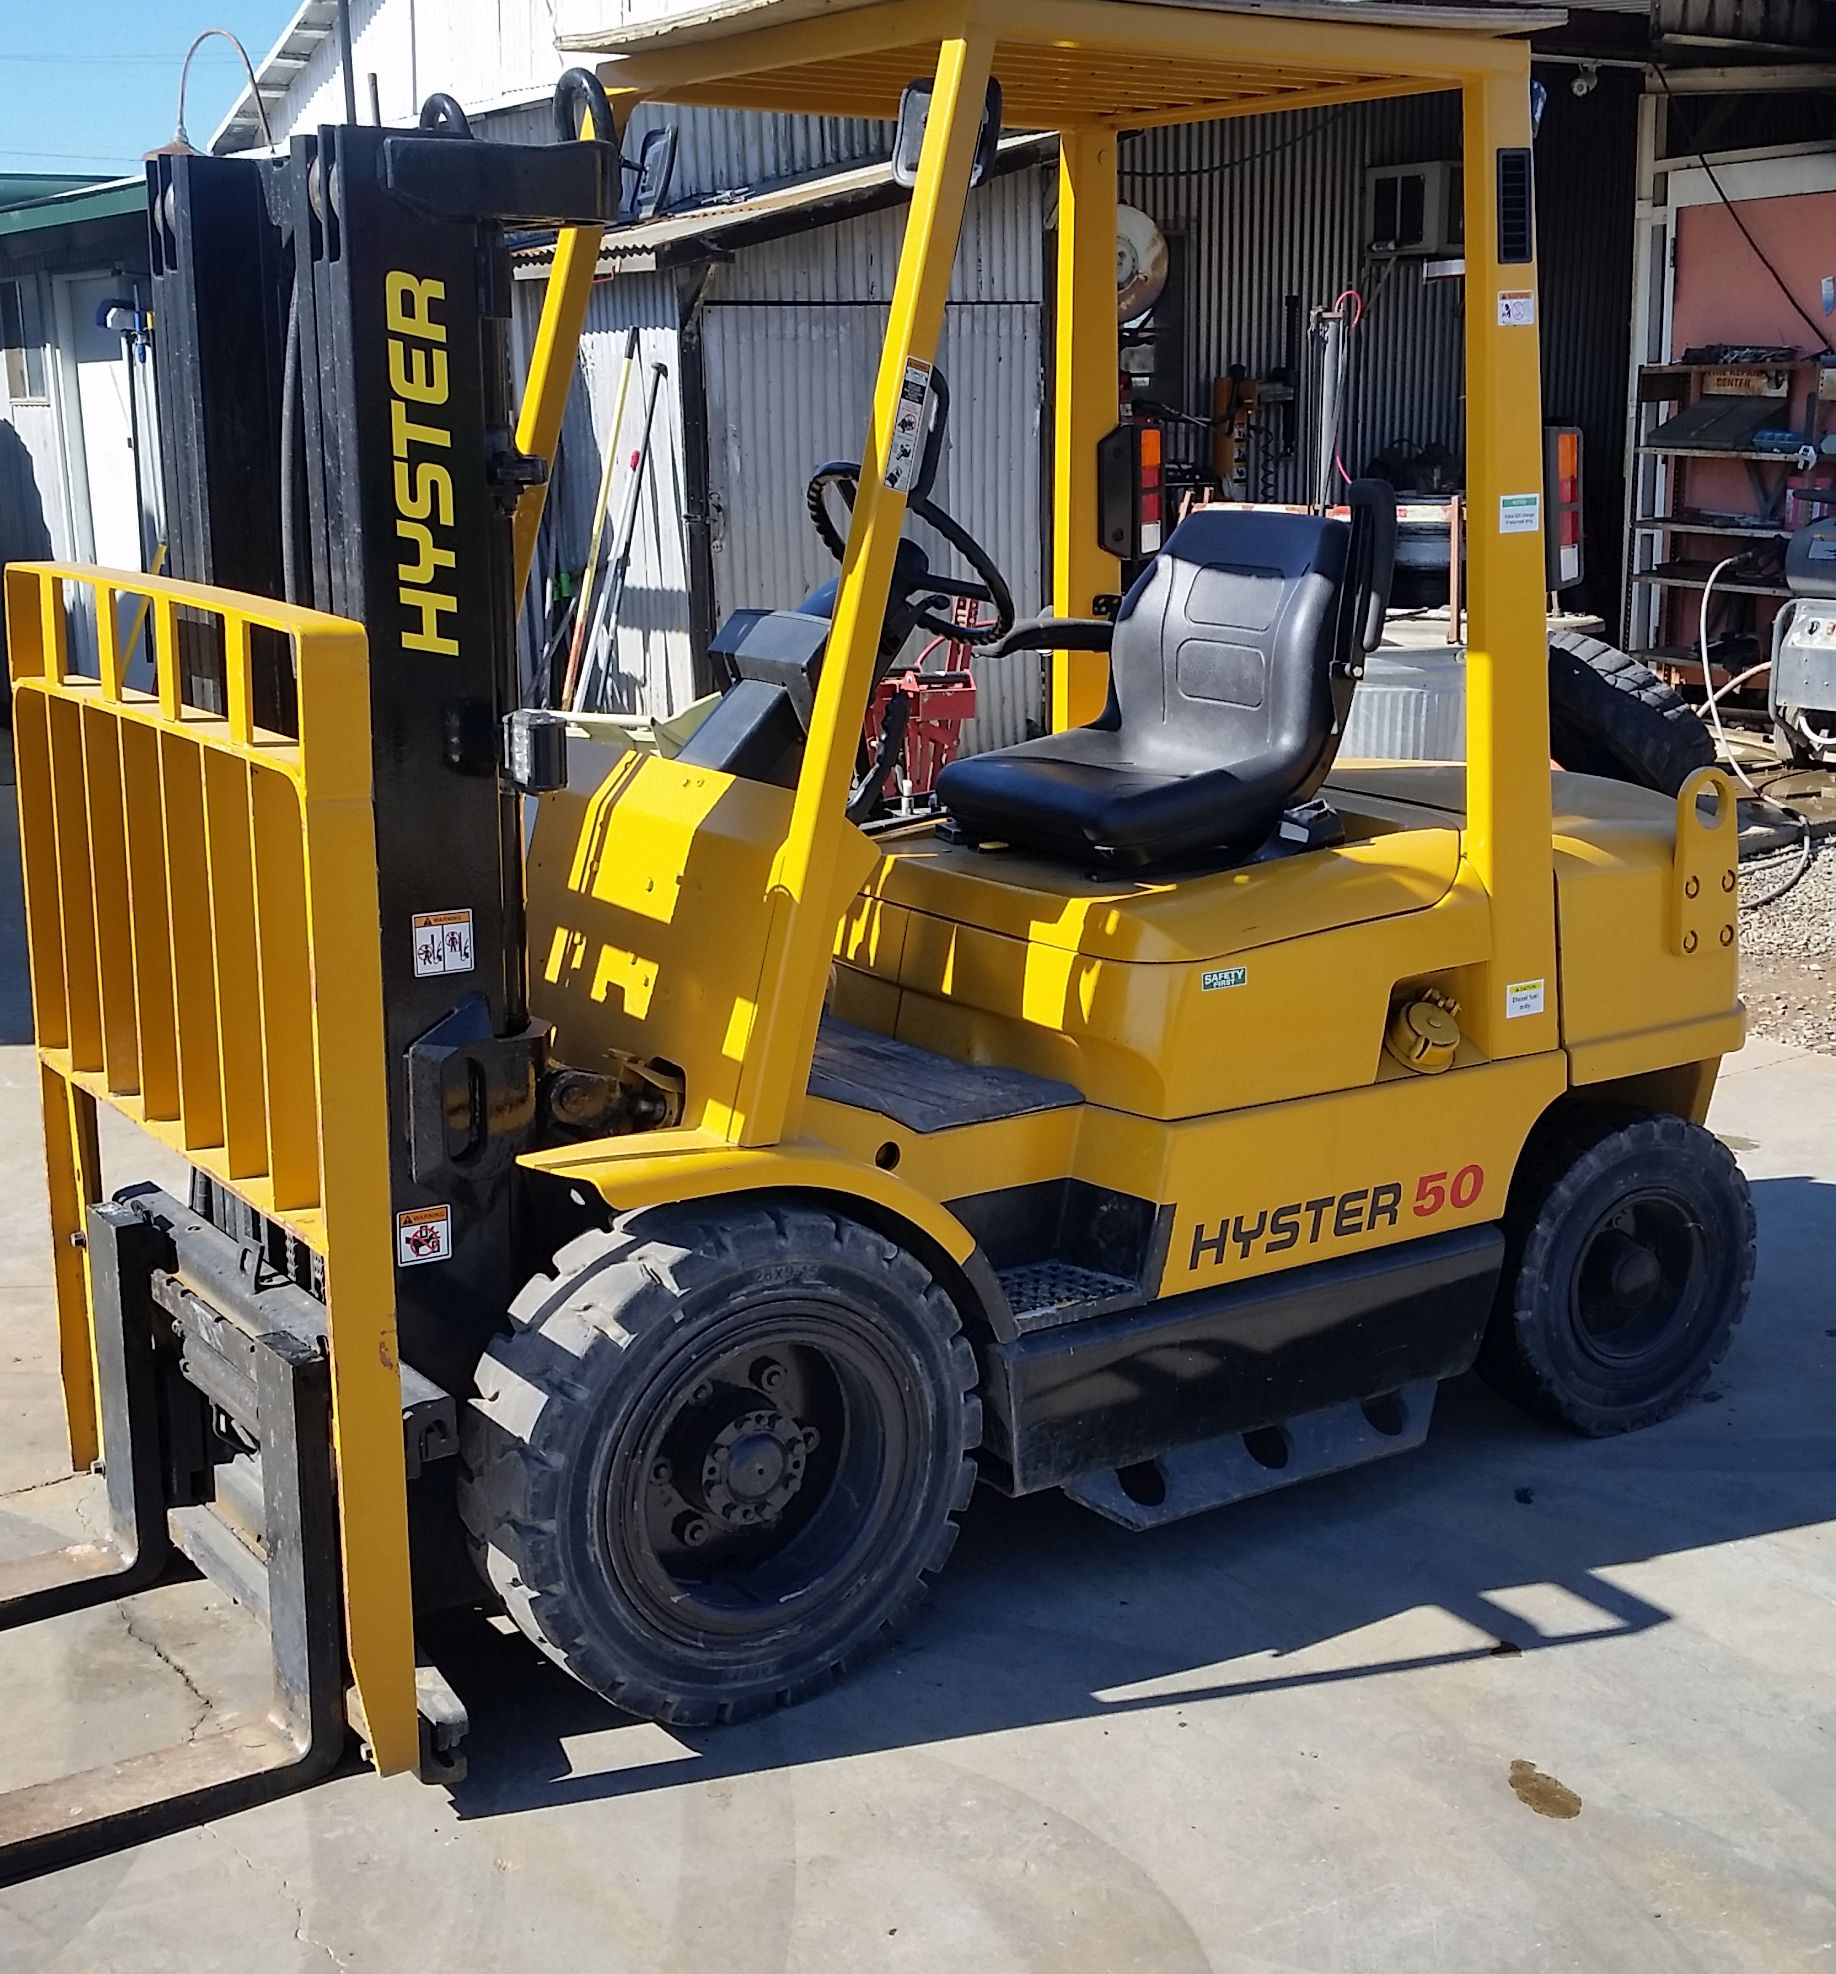 Hyster 50 Forklift Specifications Best Fork 2018 Wiring Diagram For H2 50xl 1991 Rough Terrain Truck Photo And Specs